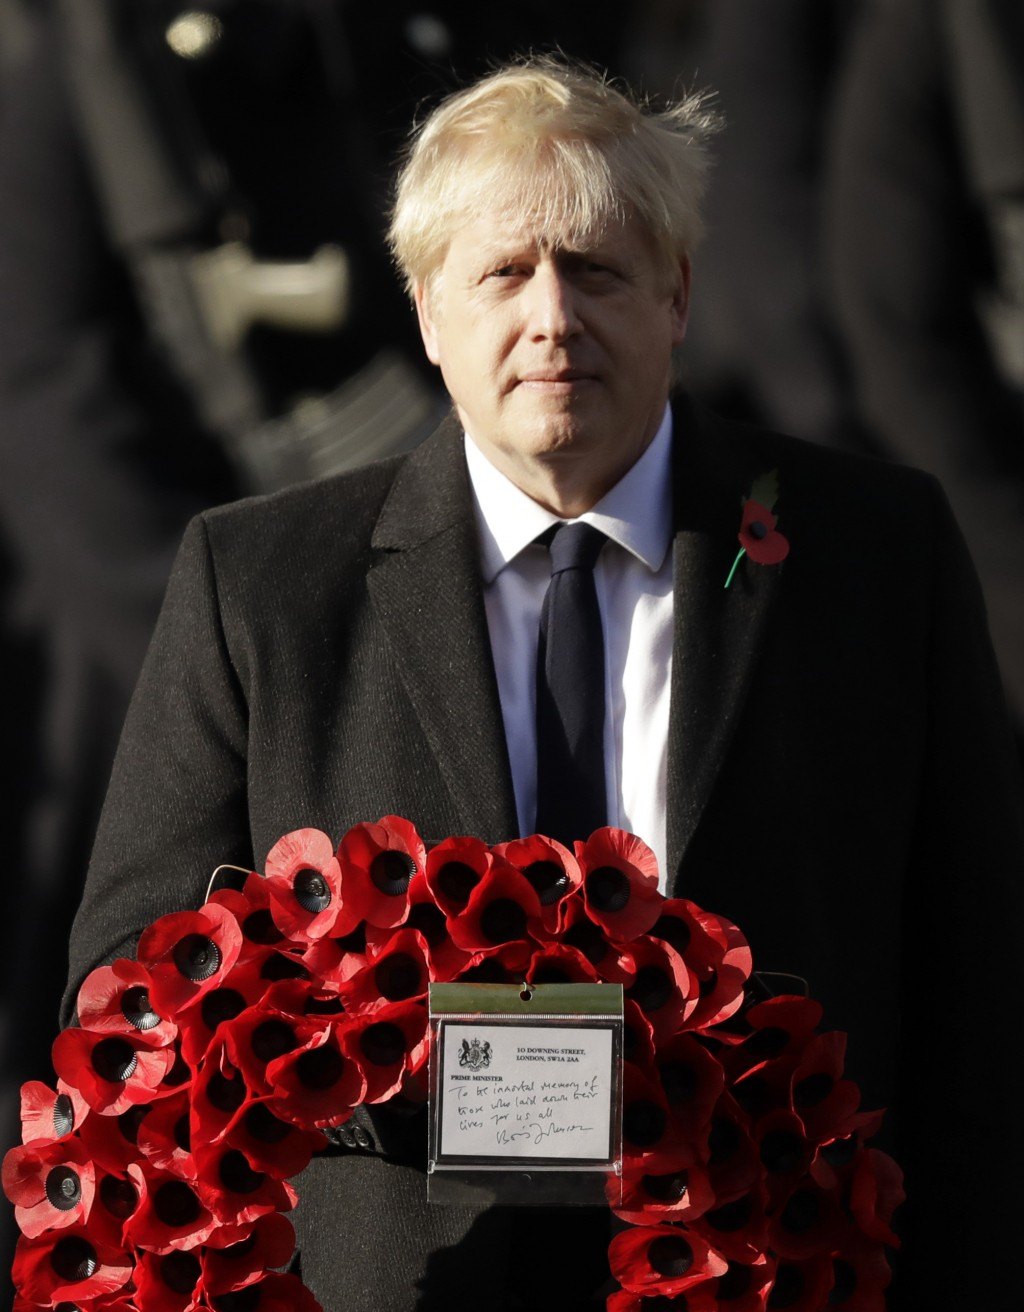 British Prime Minister Boris Johnson prepares to lay a wreath during the Remembrance Sunday ceremony at the Cenotaph in Whitehall in London, Sunday, N...